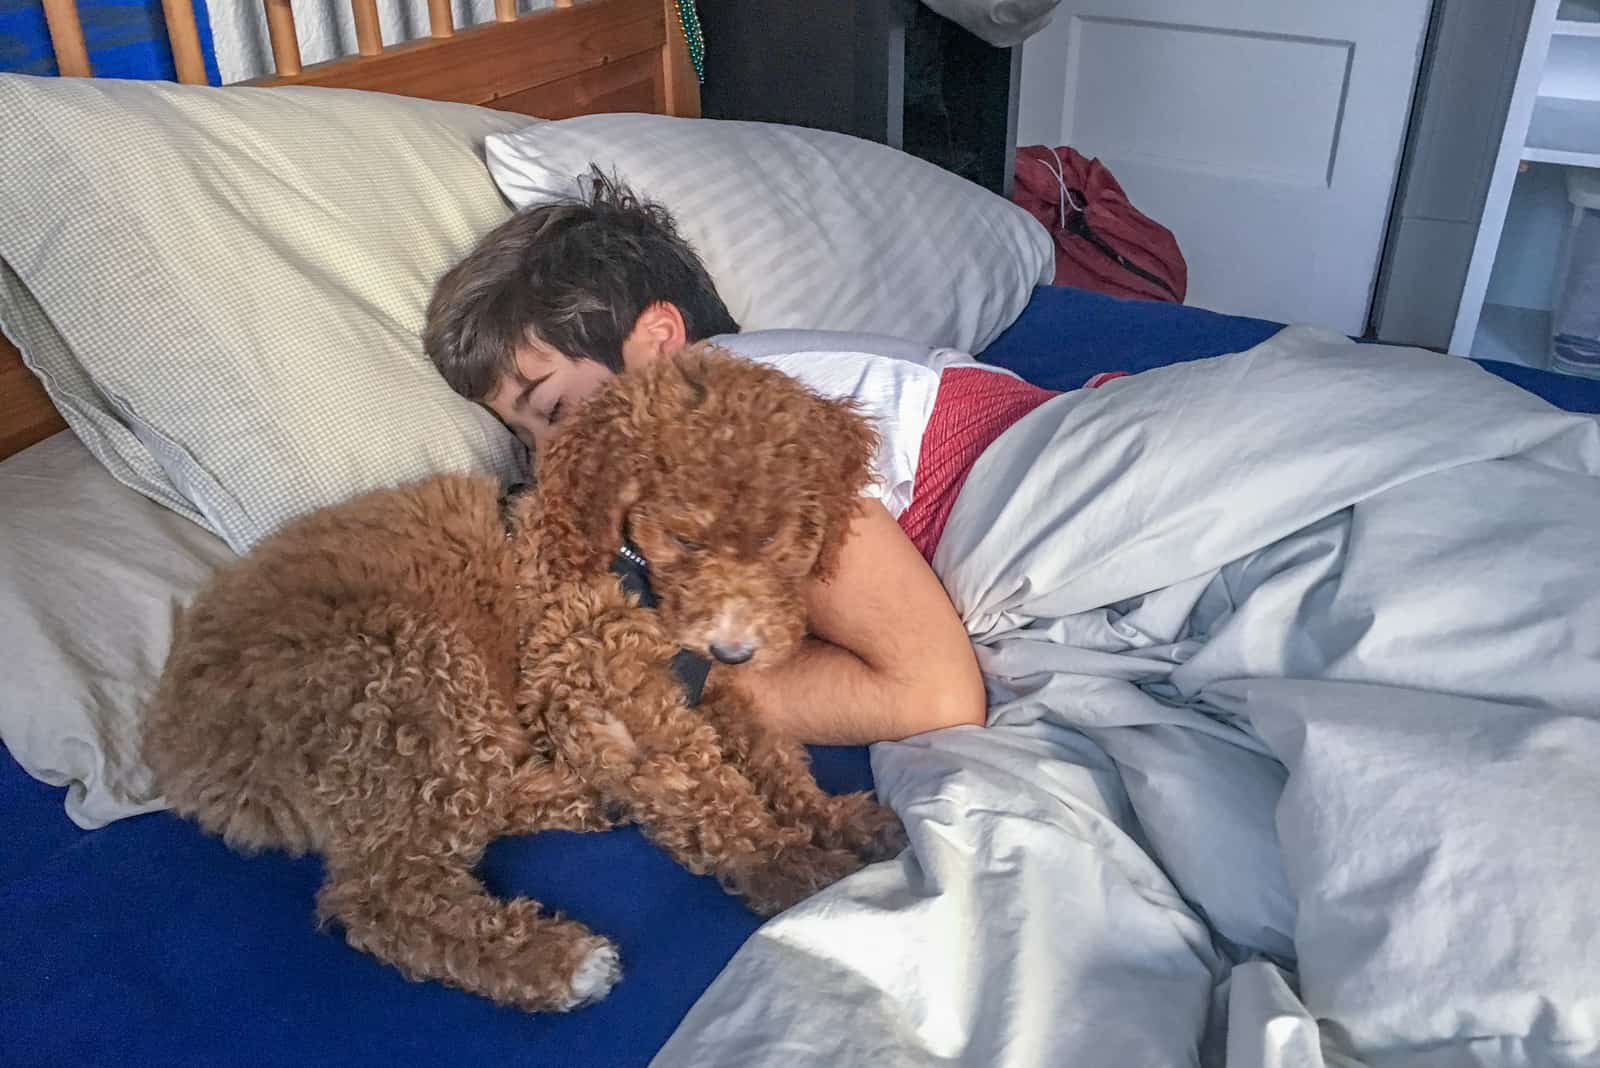 a brown dog and a boy are sleeping on the bed